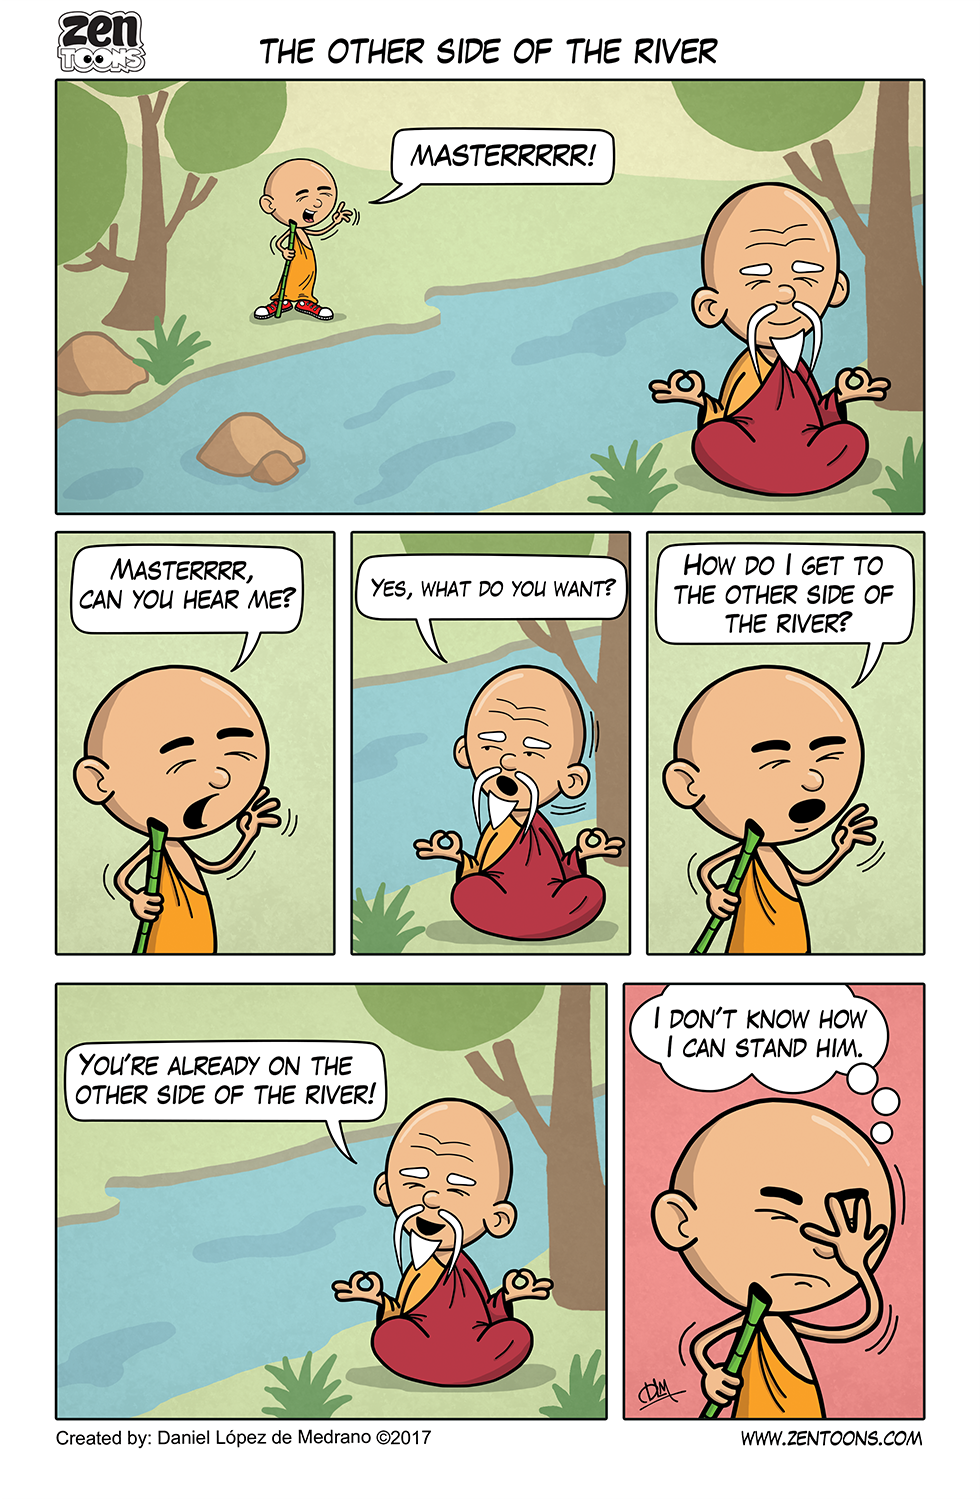 004. ZEN TOONS: The Other Side of the River.